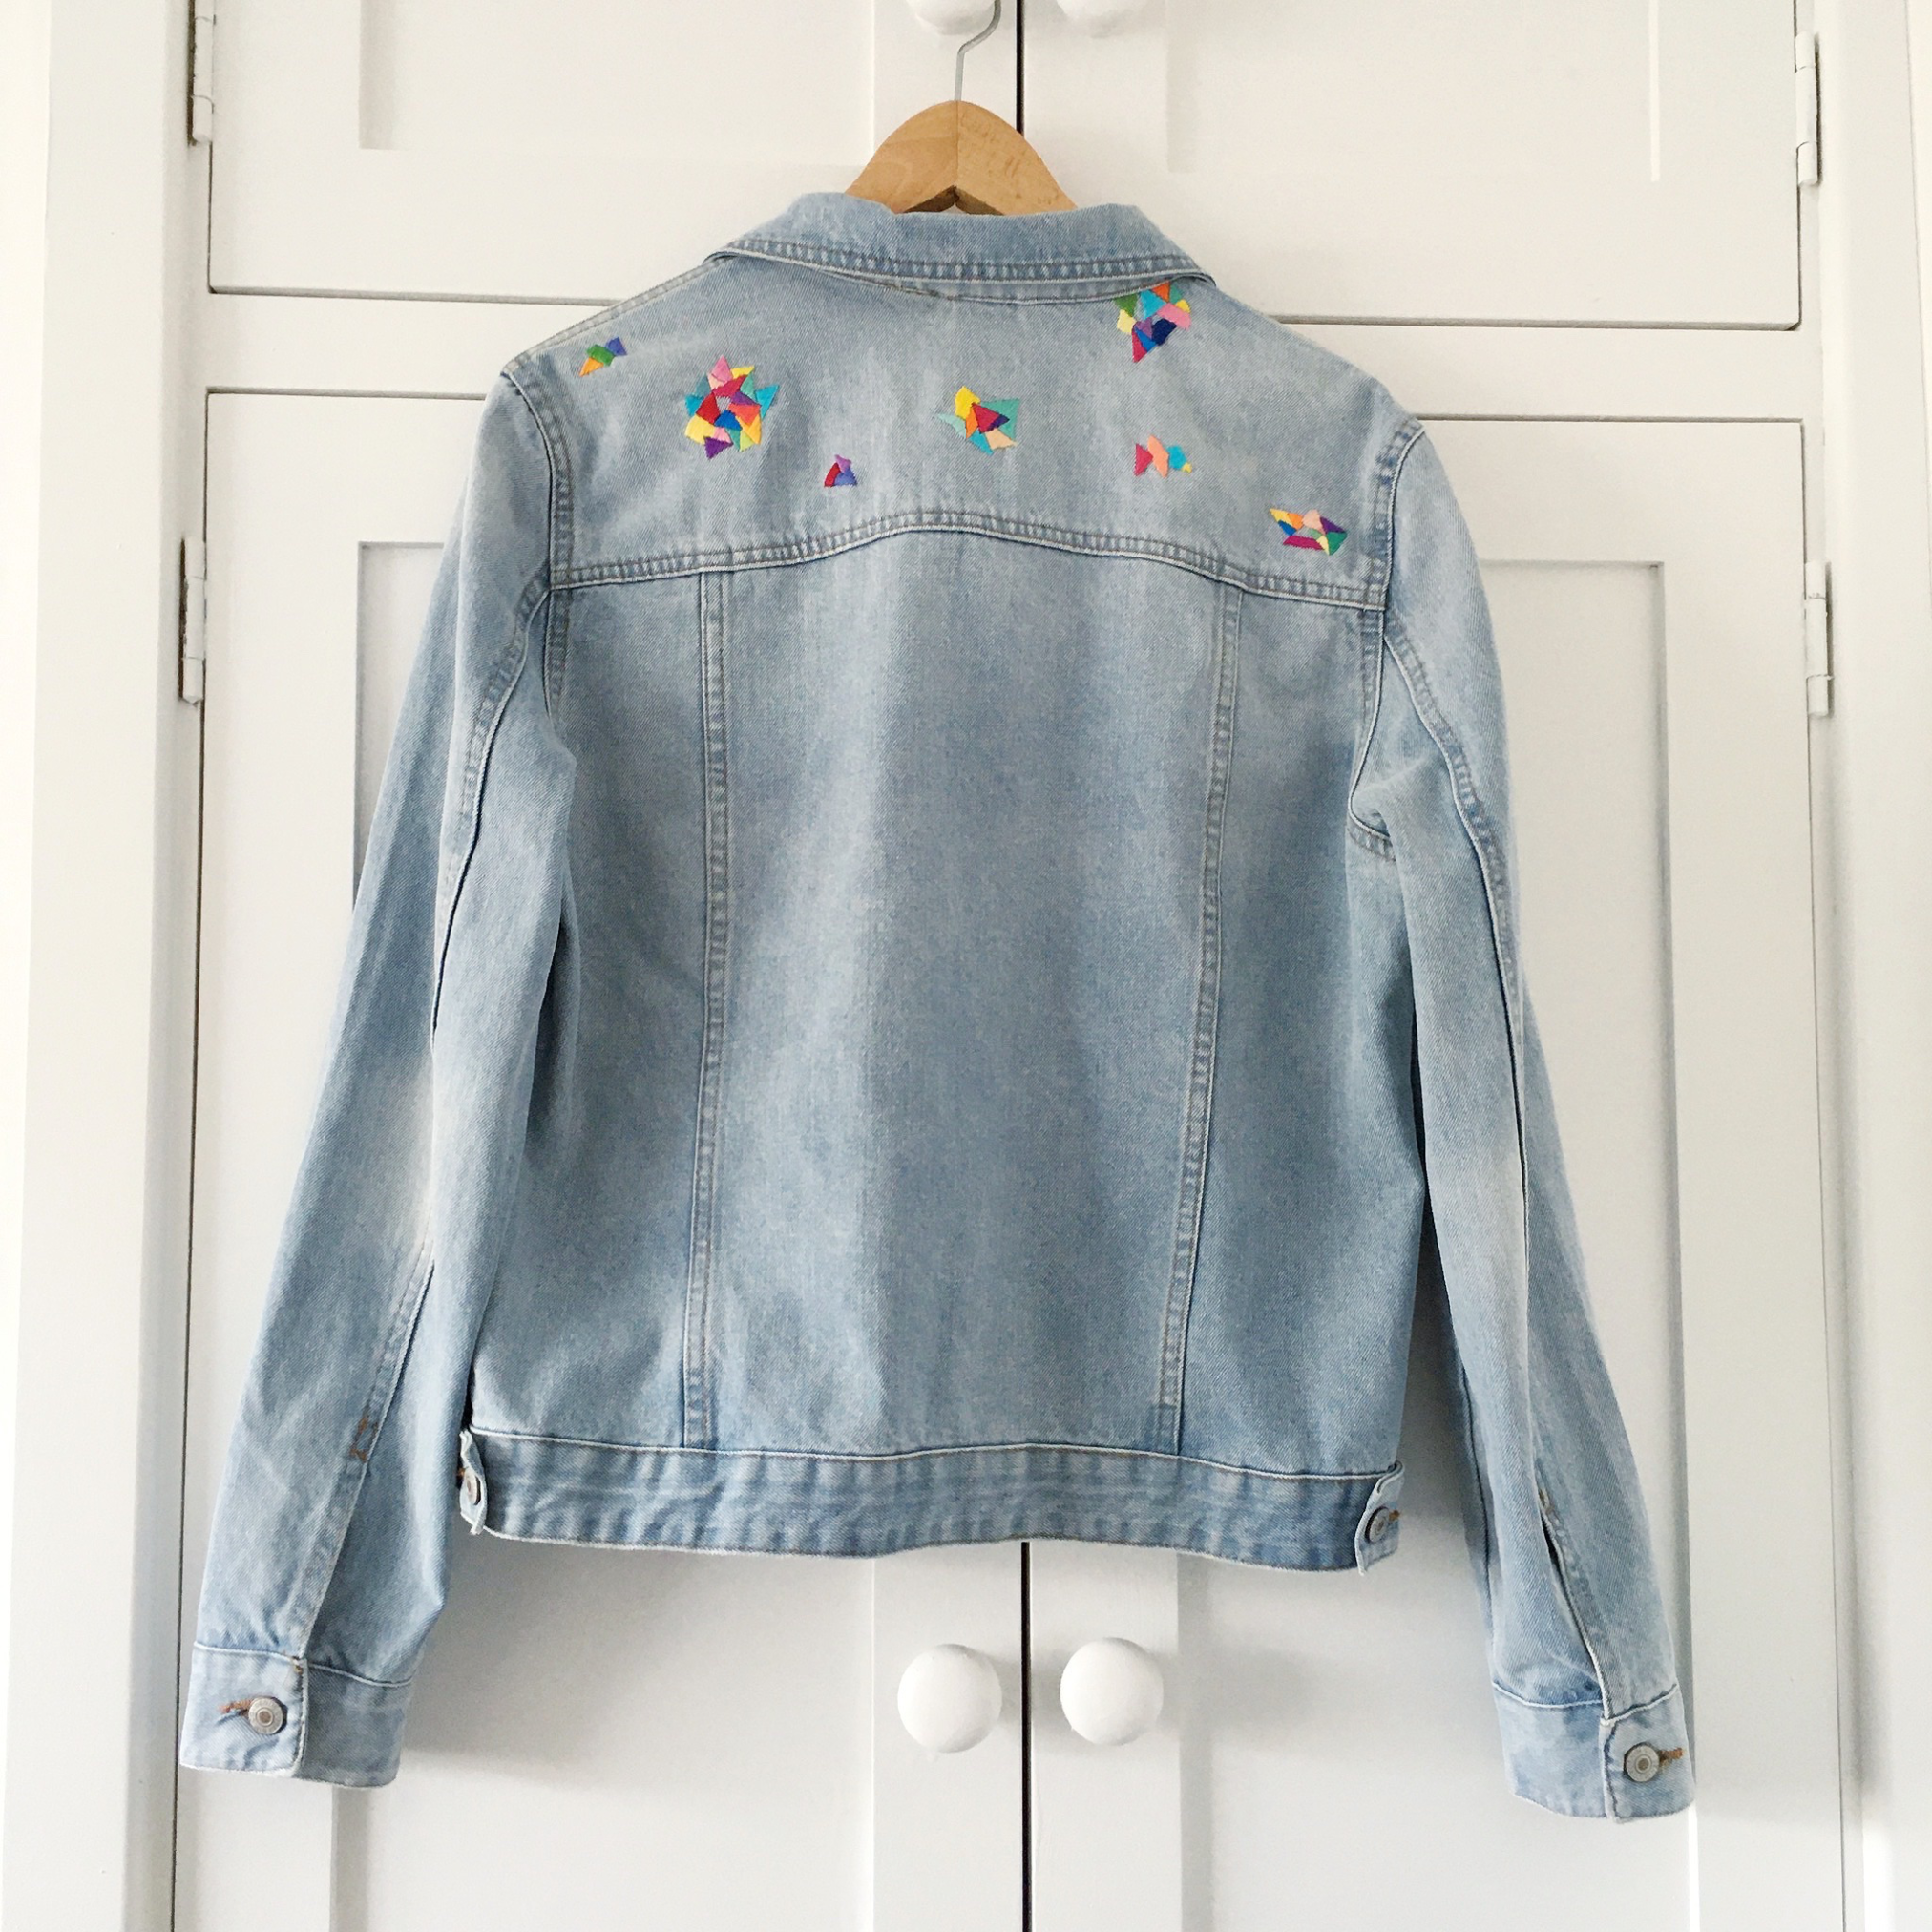 Customised denim jacket by Clare Albans | Hello! Hooray!